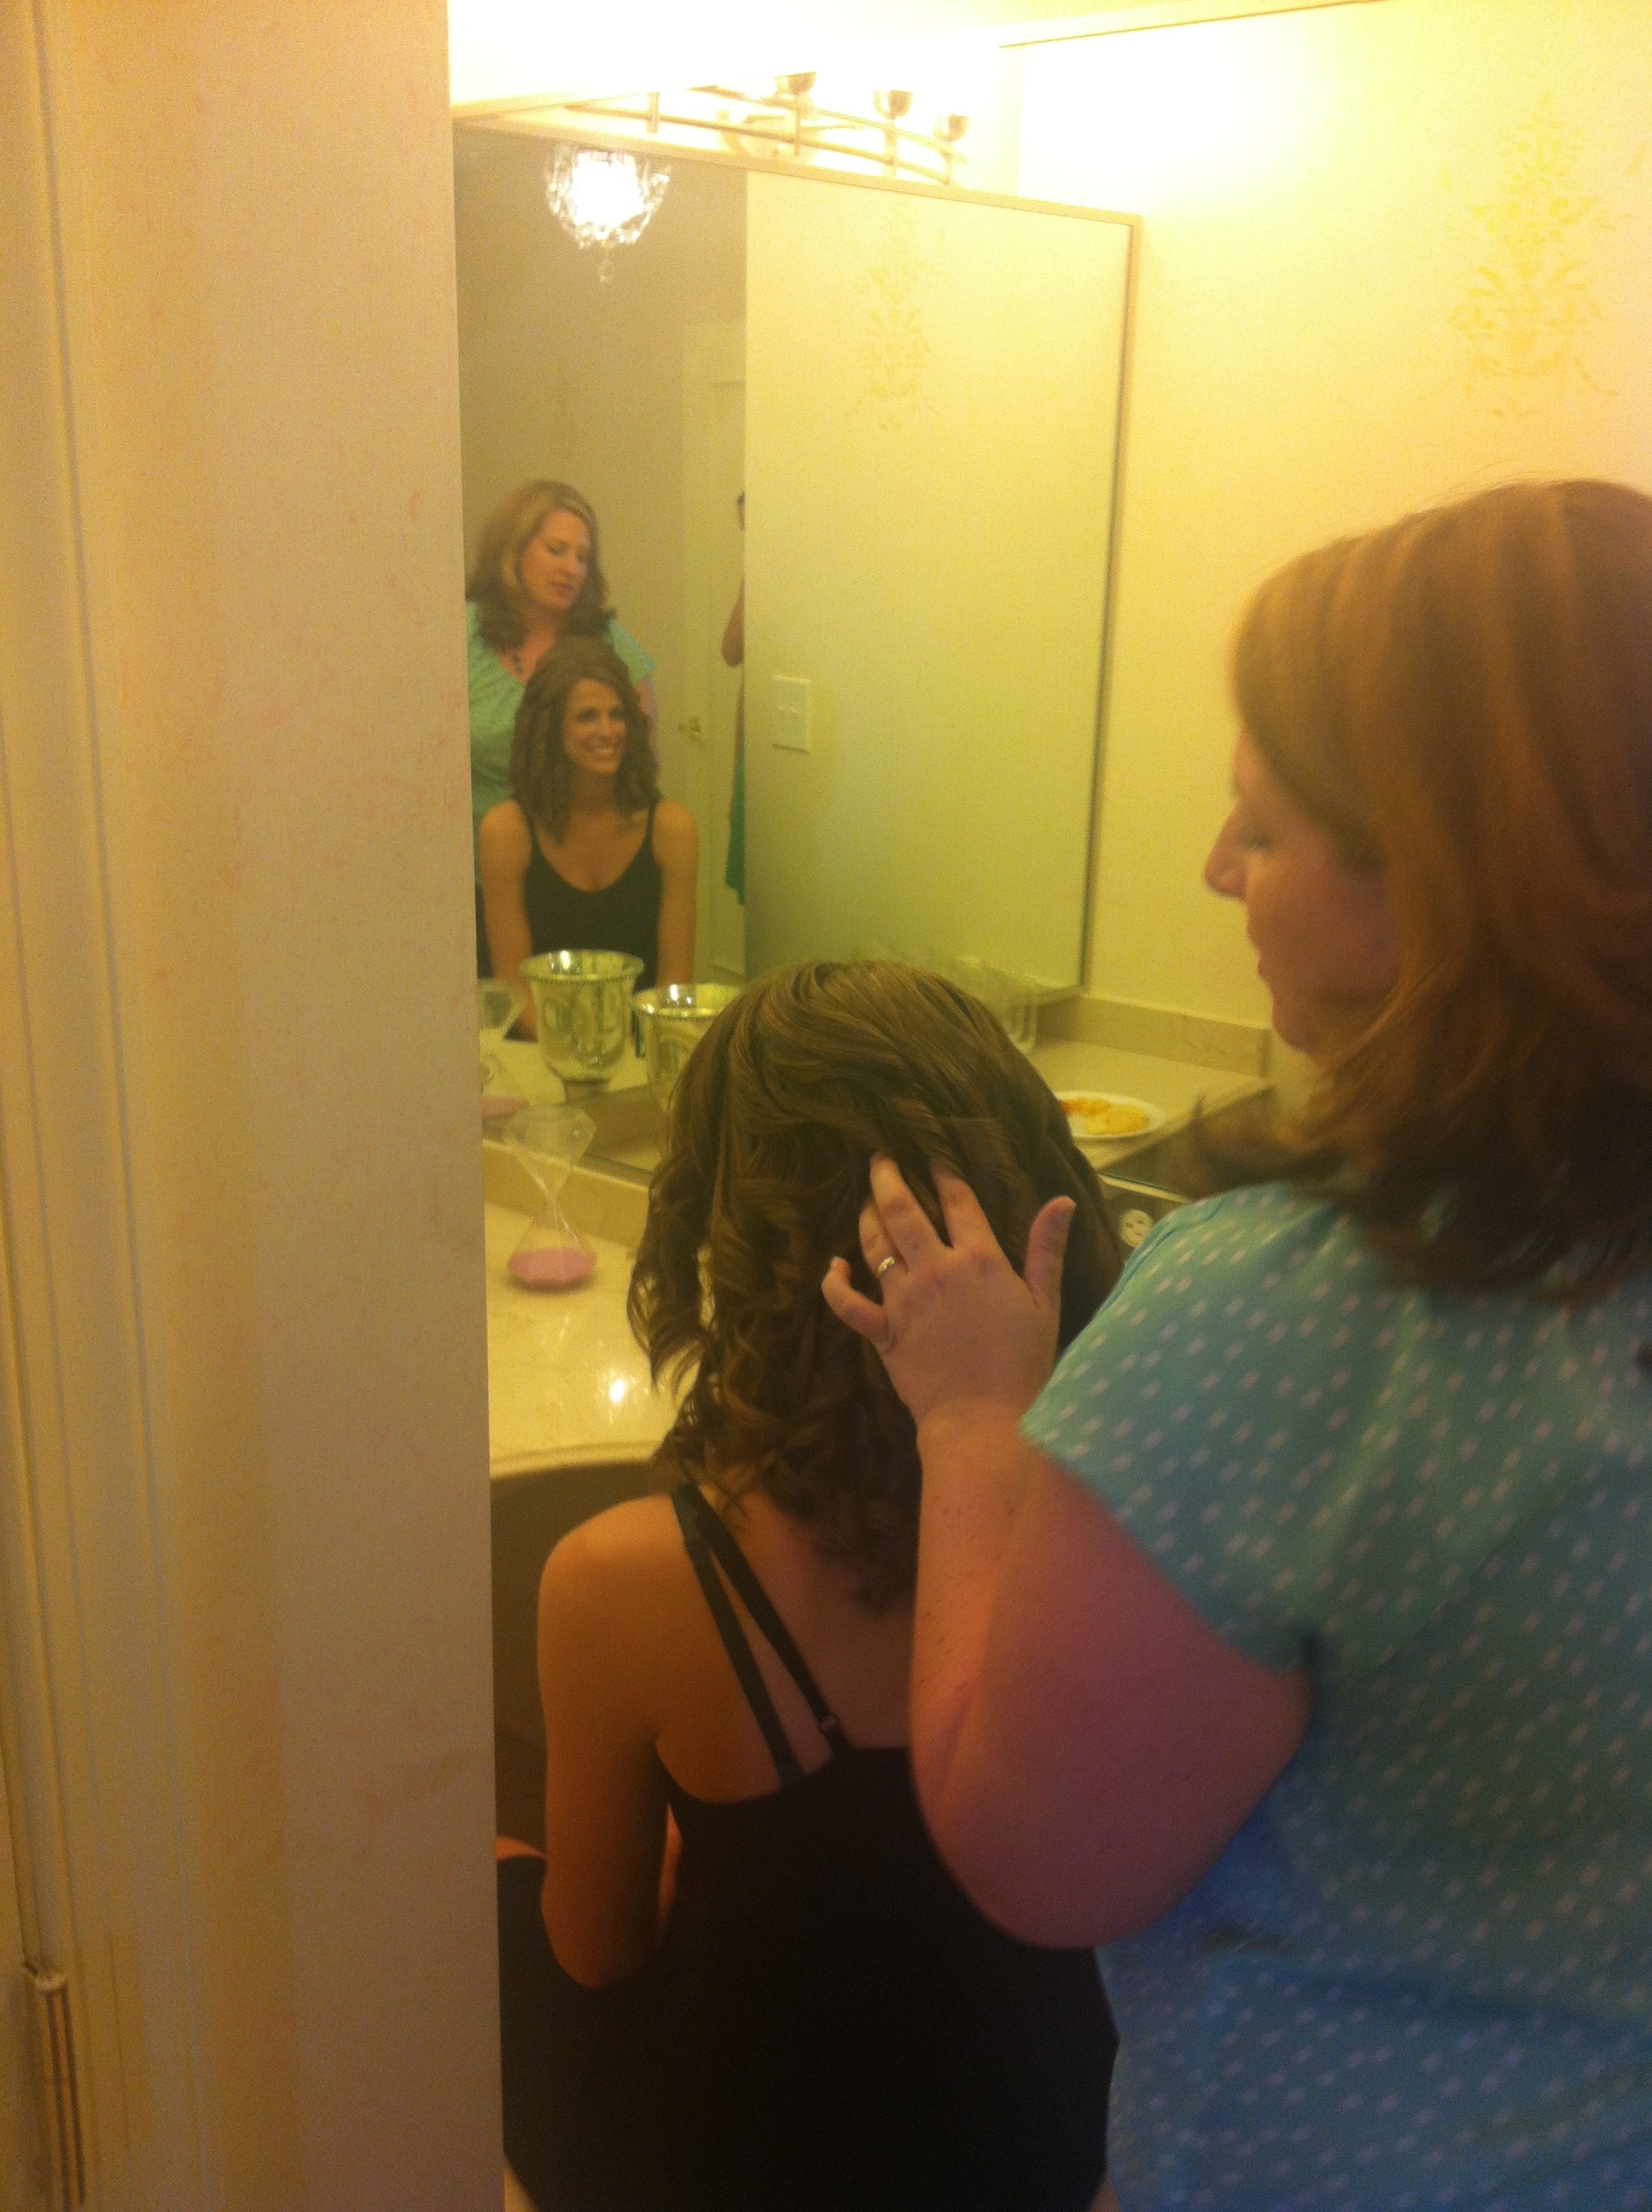 The bride getting her hair done!